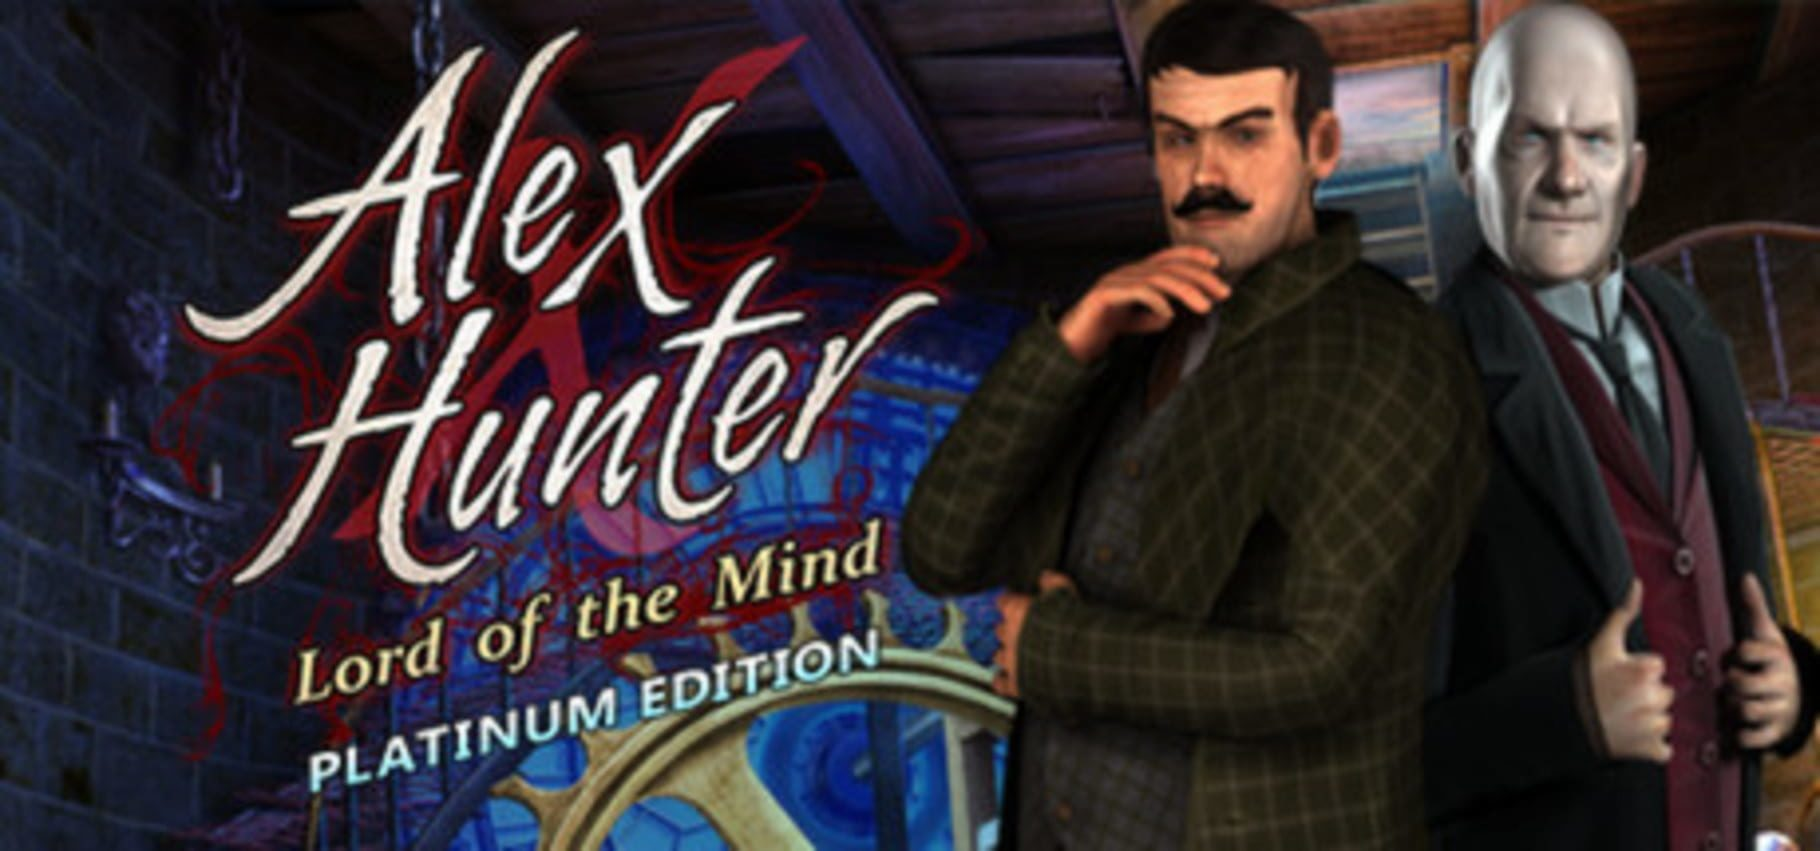 buy Alex Hunter: Lord of the Mind cd key for all platform